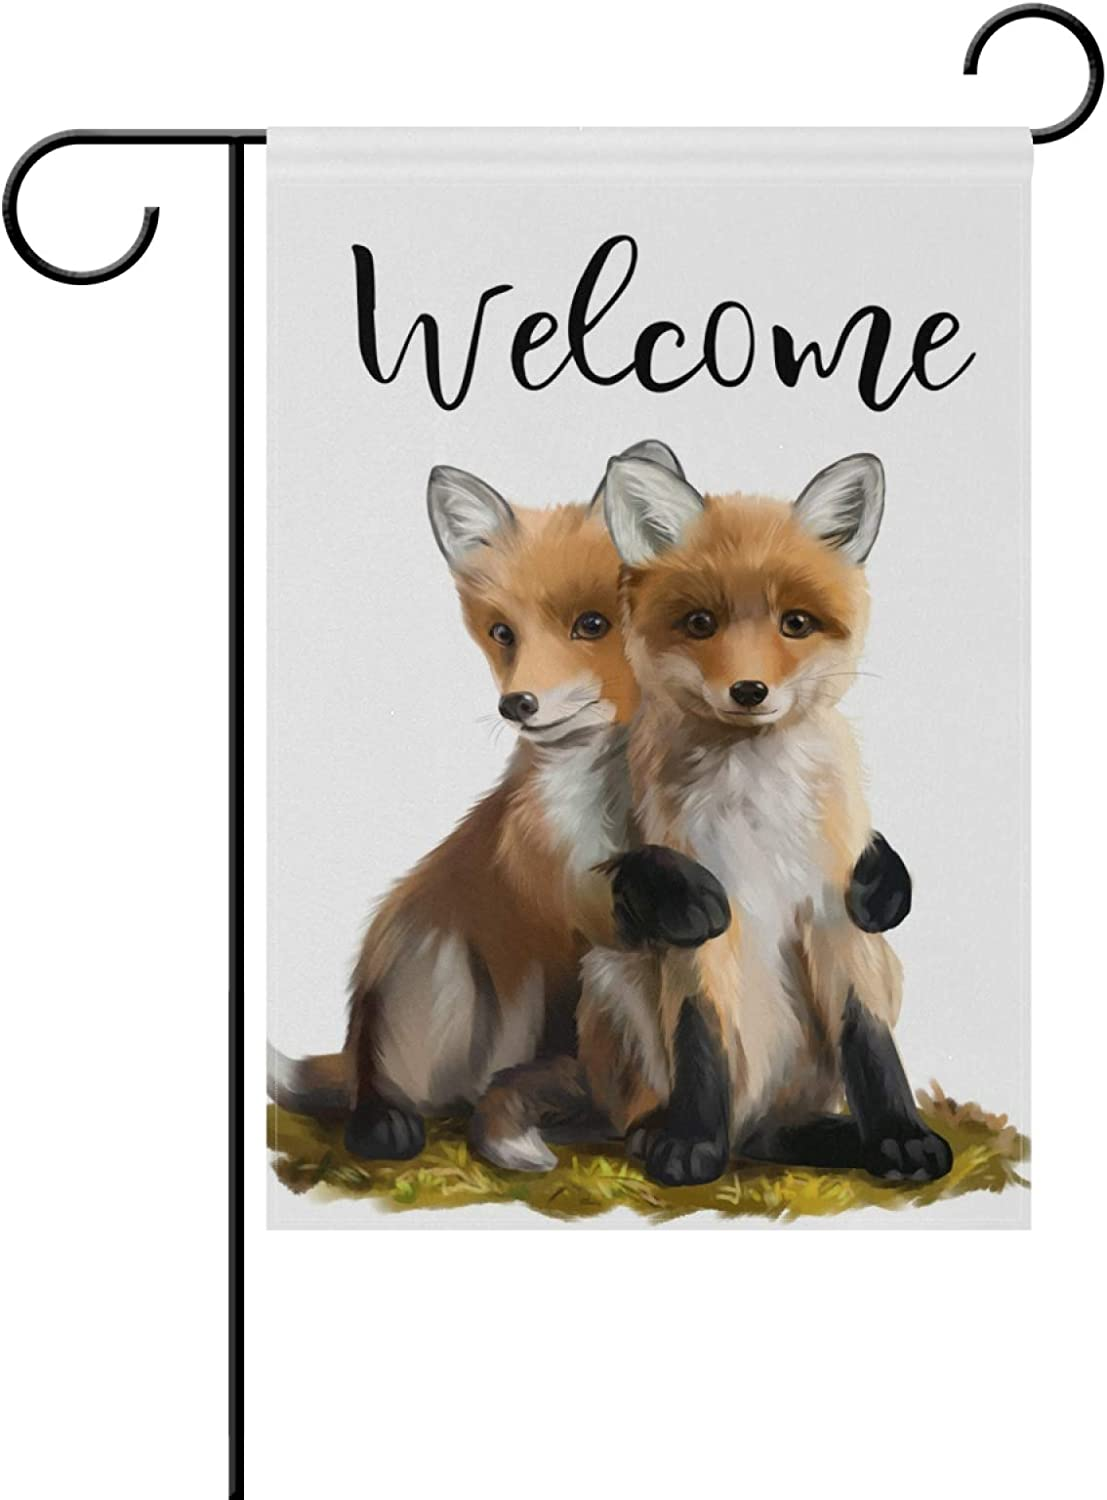 Tarity Welcome Two Little Foxes Seasonal Garden Flag Double Sided Garden Flag Welcome Spring Summer Outdoor Festival Holiday Decorative House Yard Flag Garden Flag 12x18 in